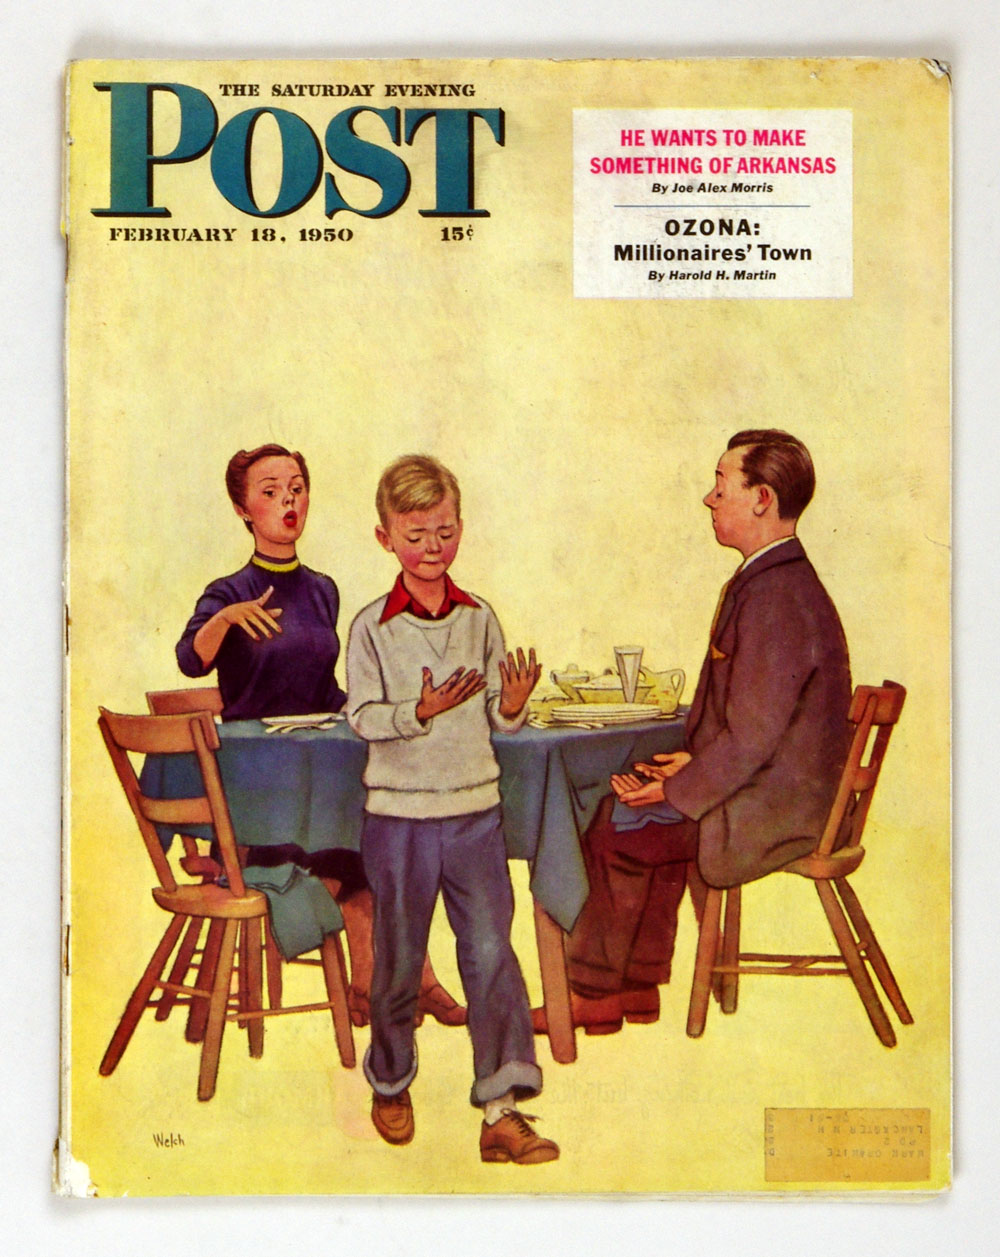 The Saturday Evening Post 1950 Feb 18 Dirty Hands & Dinner by Welch